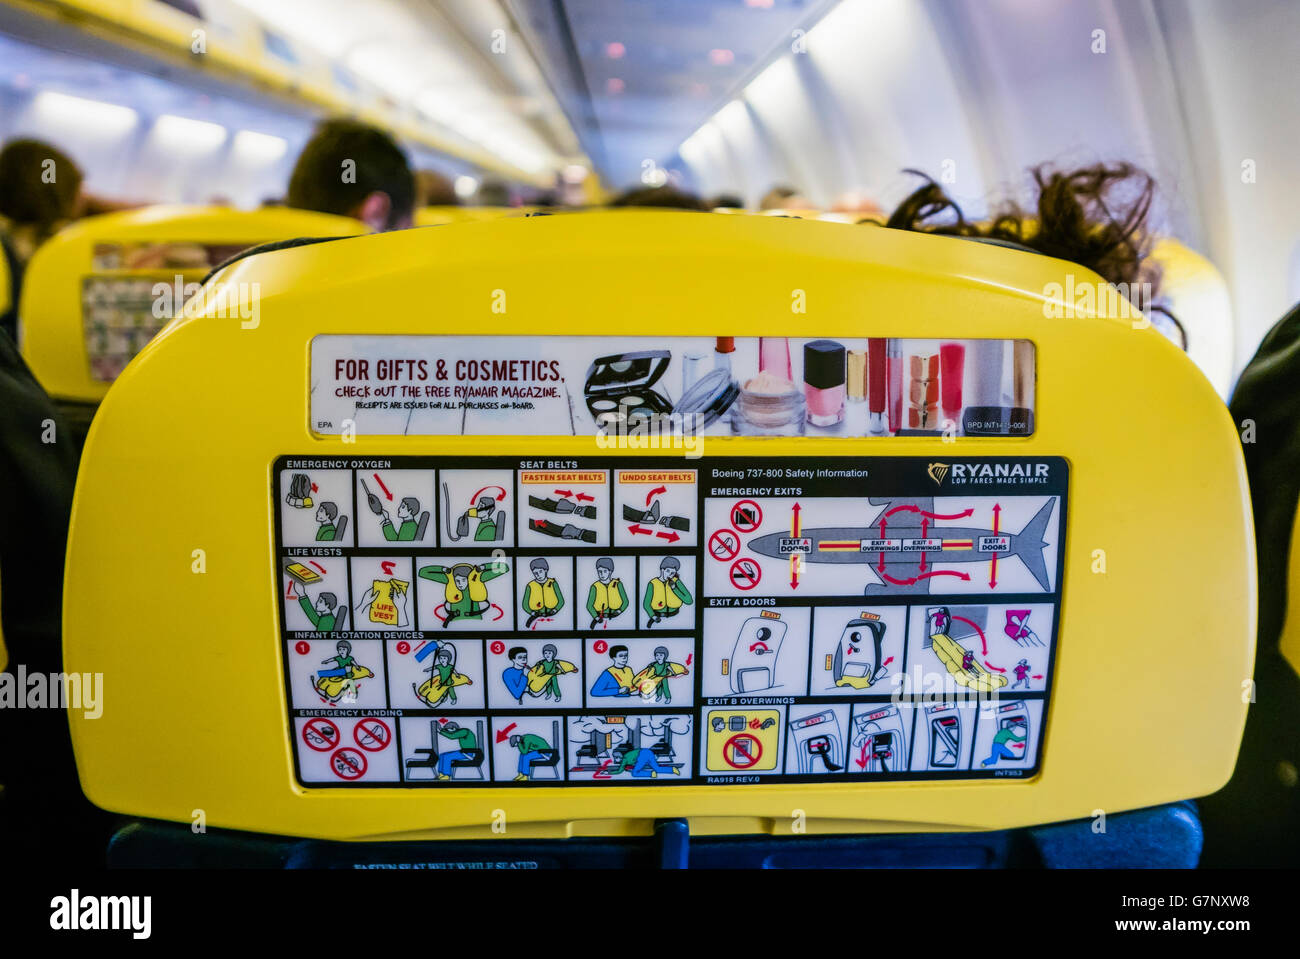 Emergency evacuation information on the back of a yellow headrest on a Ryanair airplane.  Ryanair have no safety - Stock Image